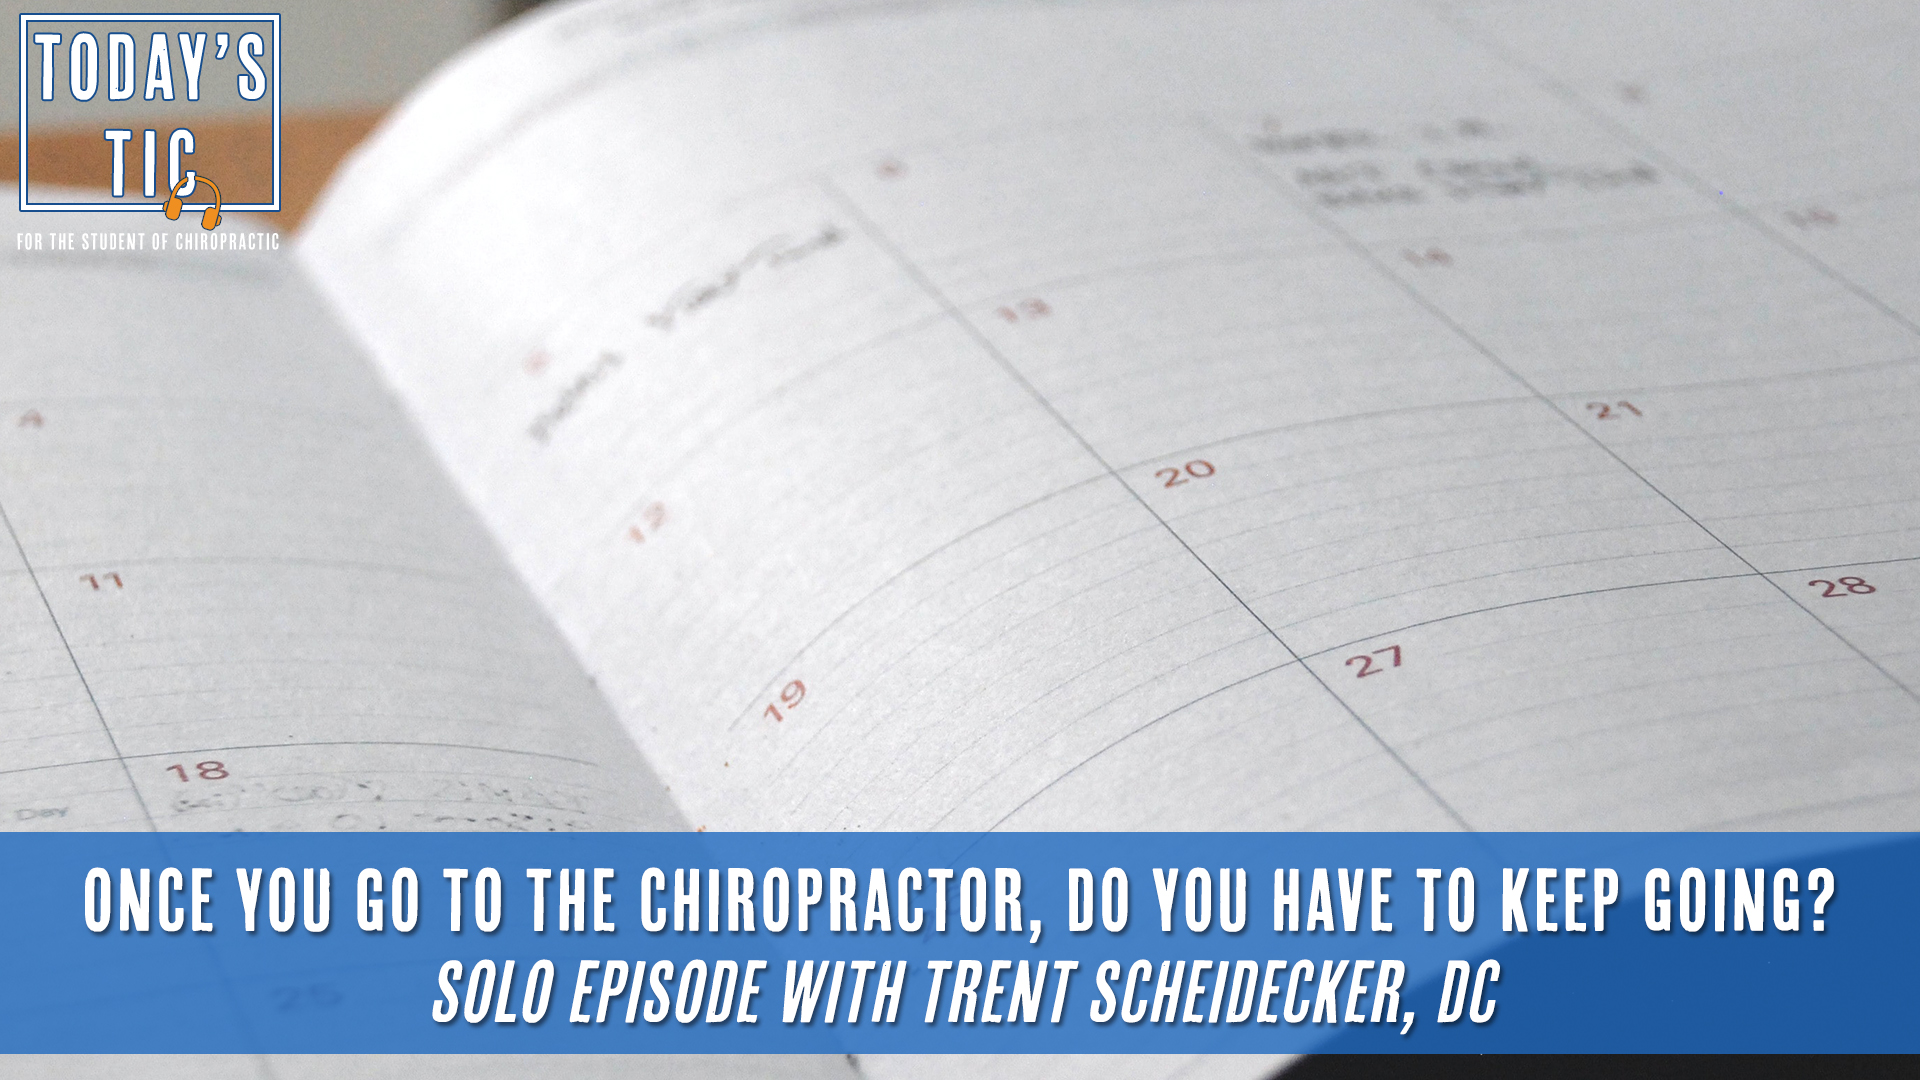 Once You Go to the Chiropractor, Do You Have to Keep Going?